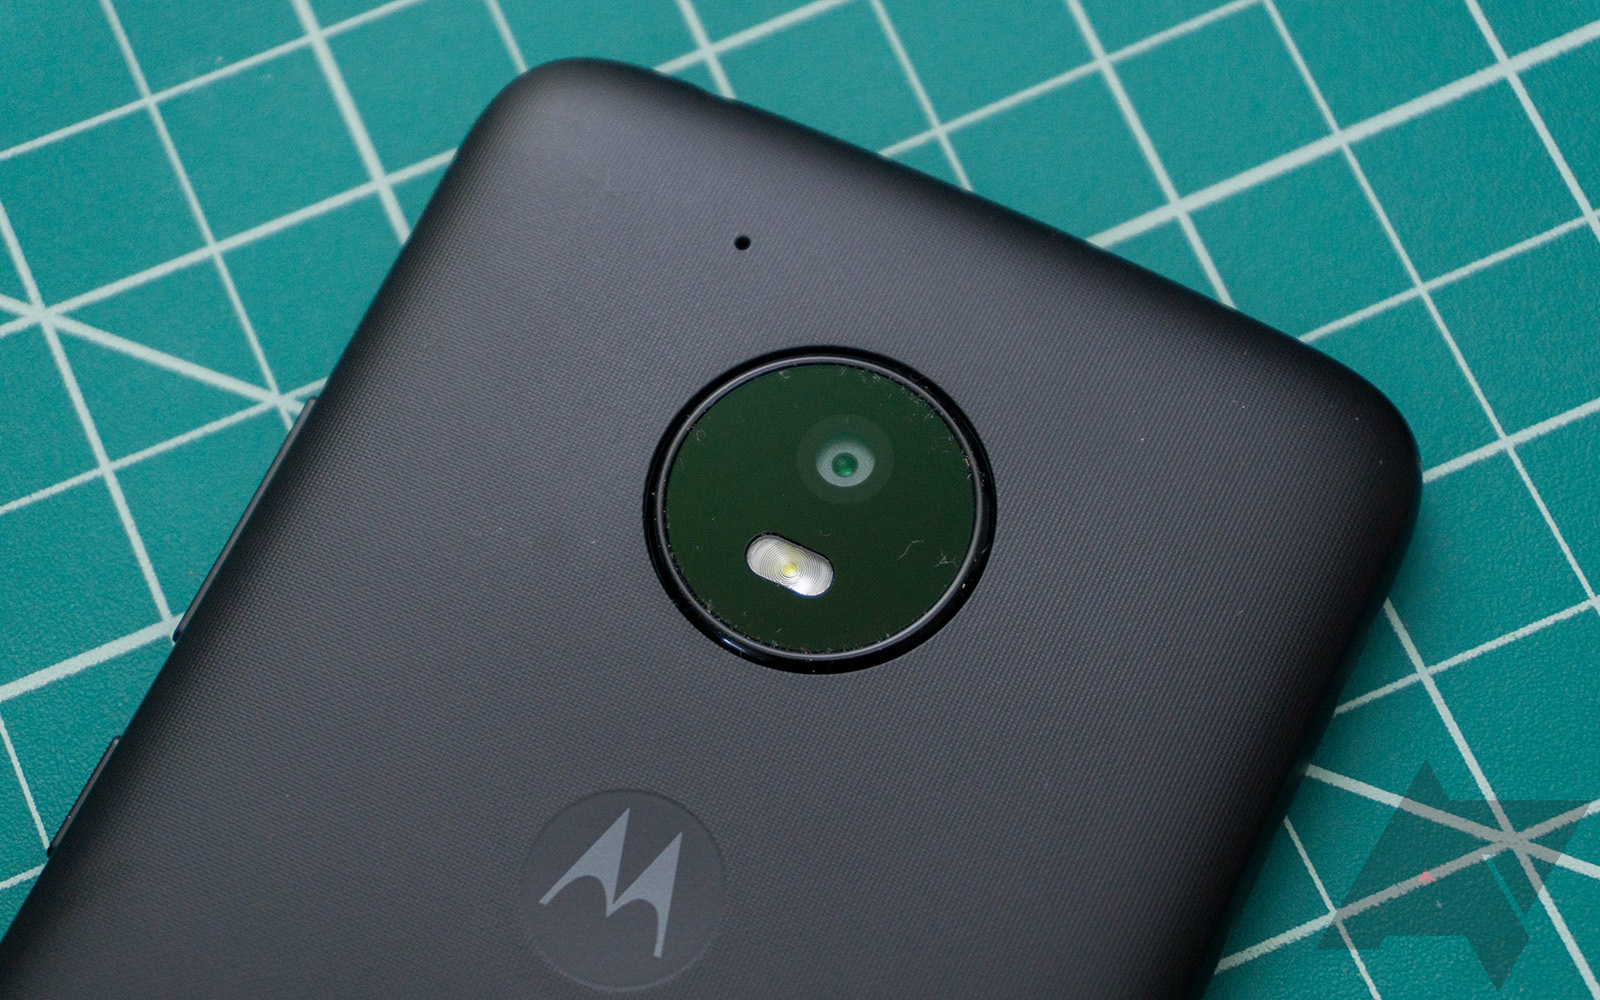 Moto E4 review: For the price, it's hard to argue